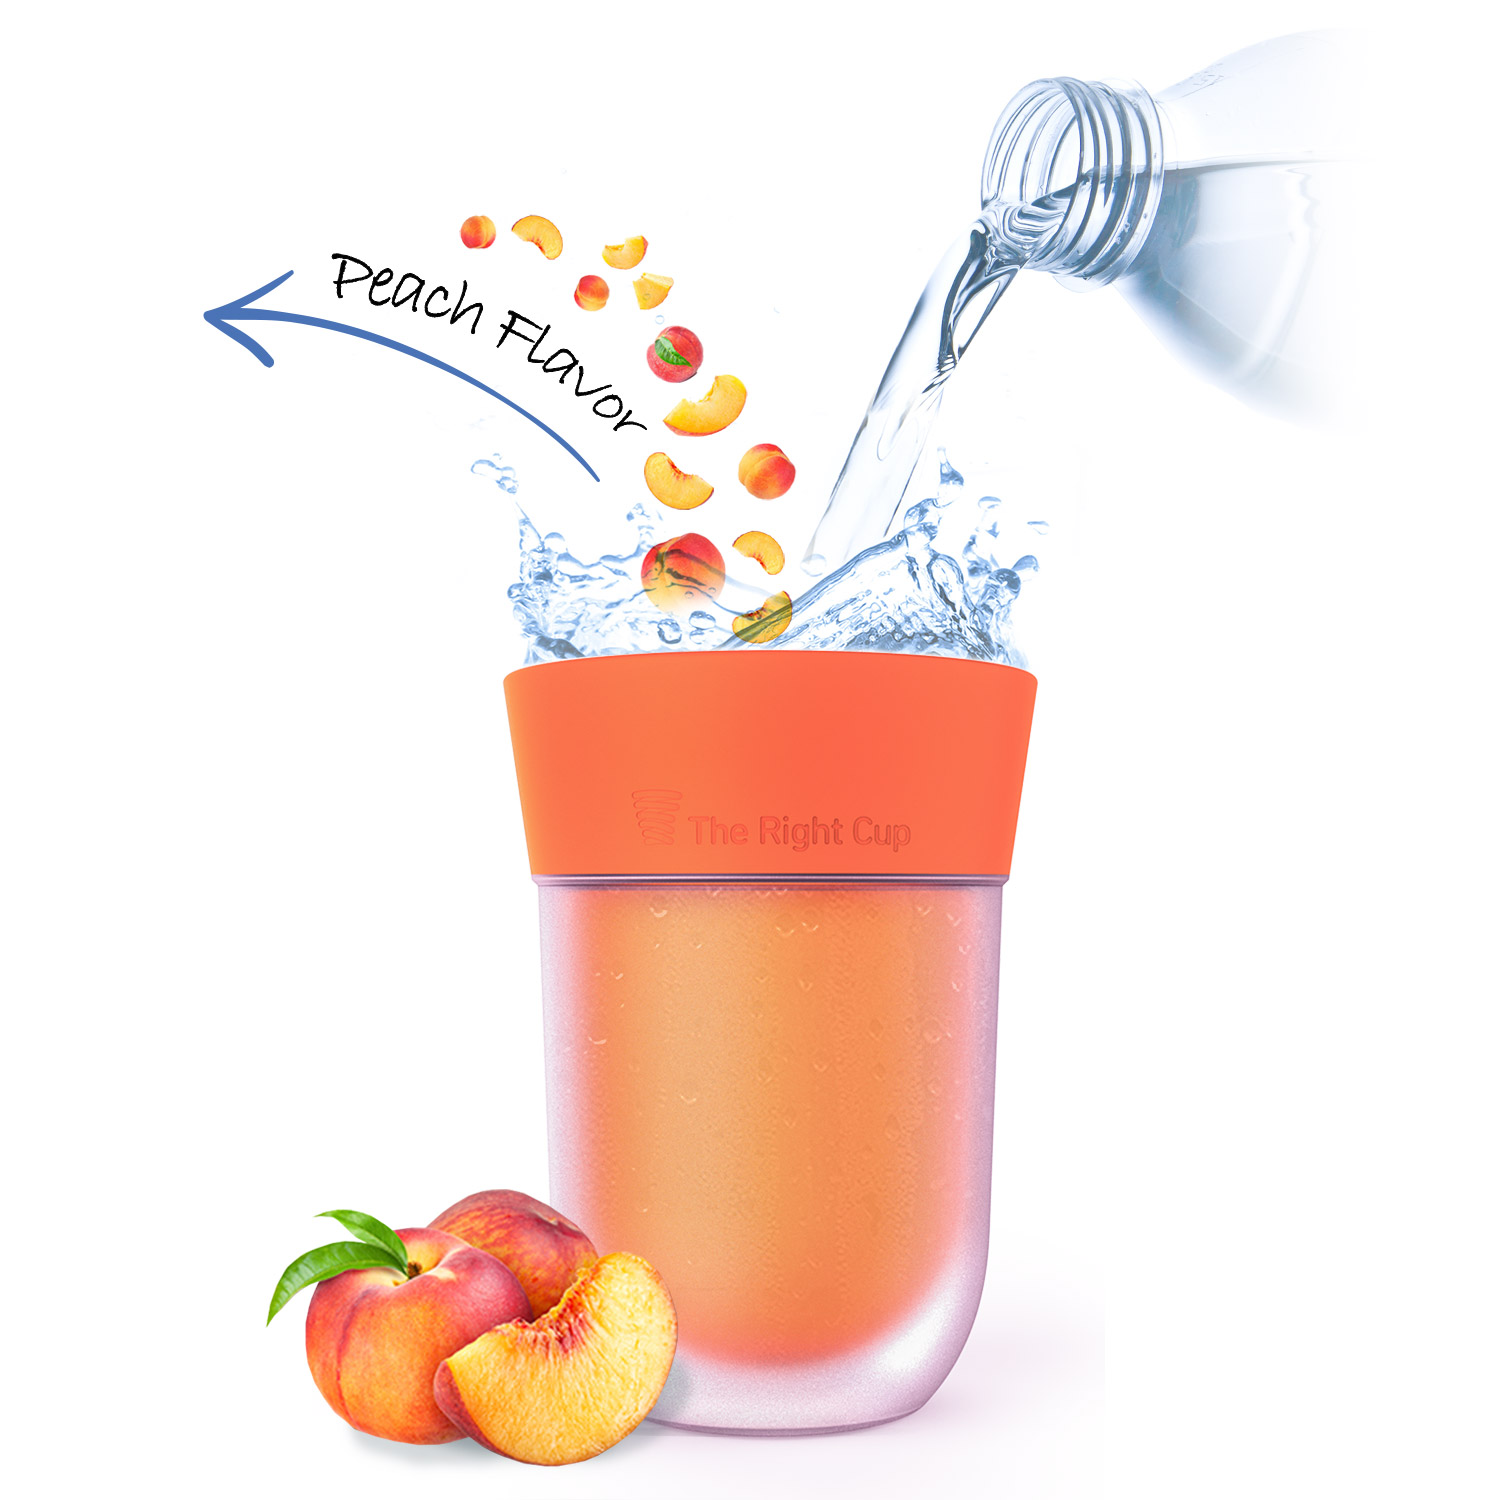 The Right Cup™ is a flavored cup that aims to enha